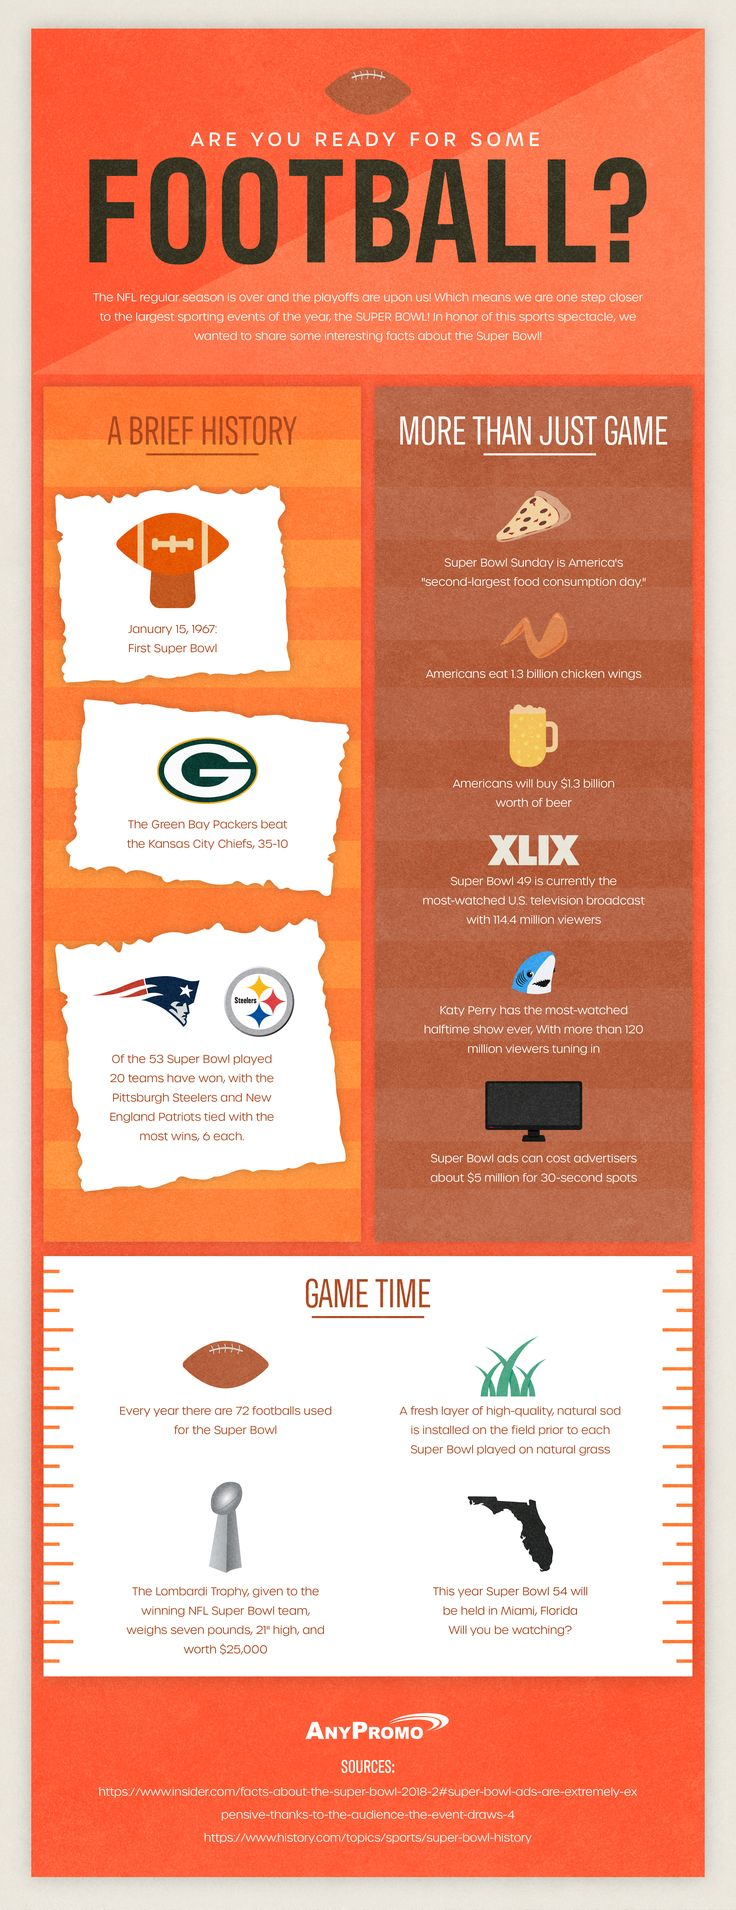 [INFOGRAPHIC] Super Bowl Facts in 2020 (With images